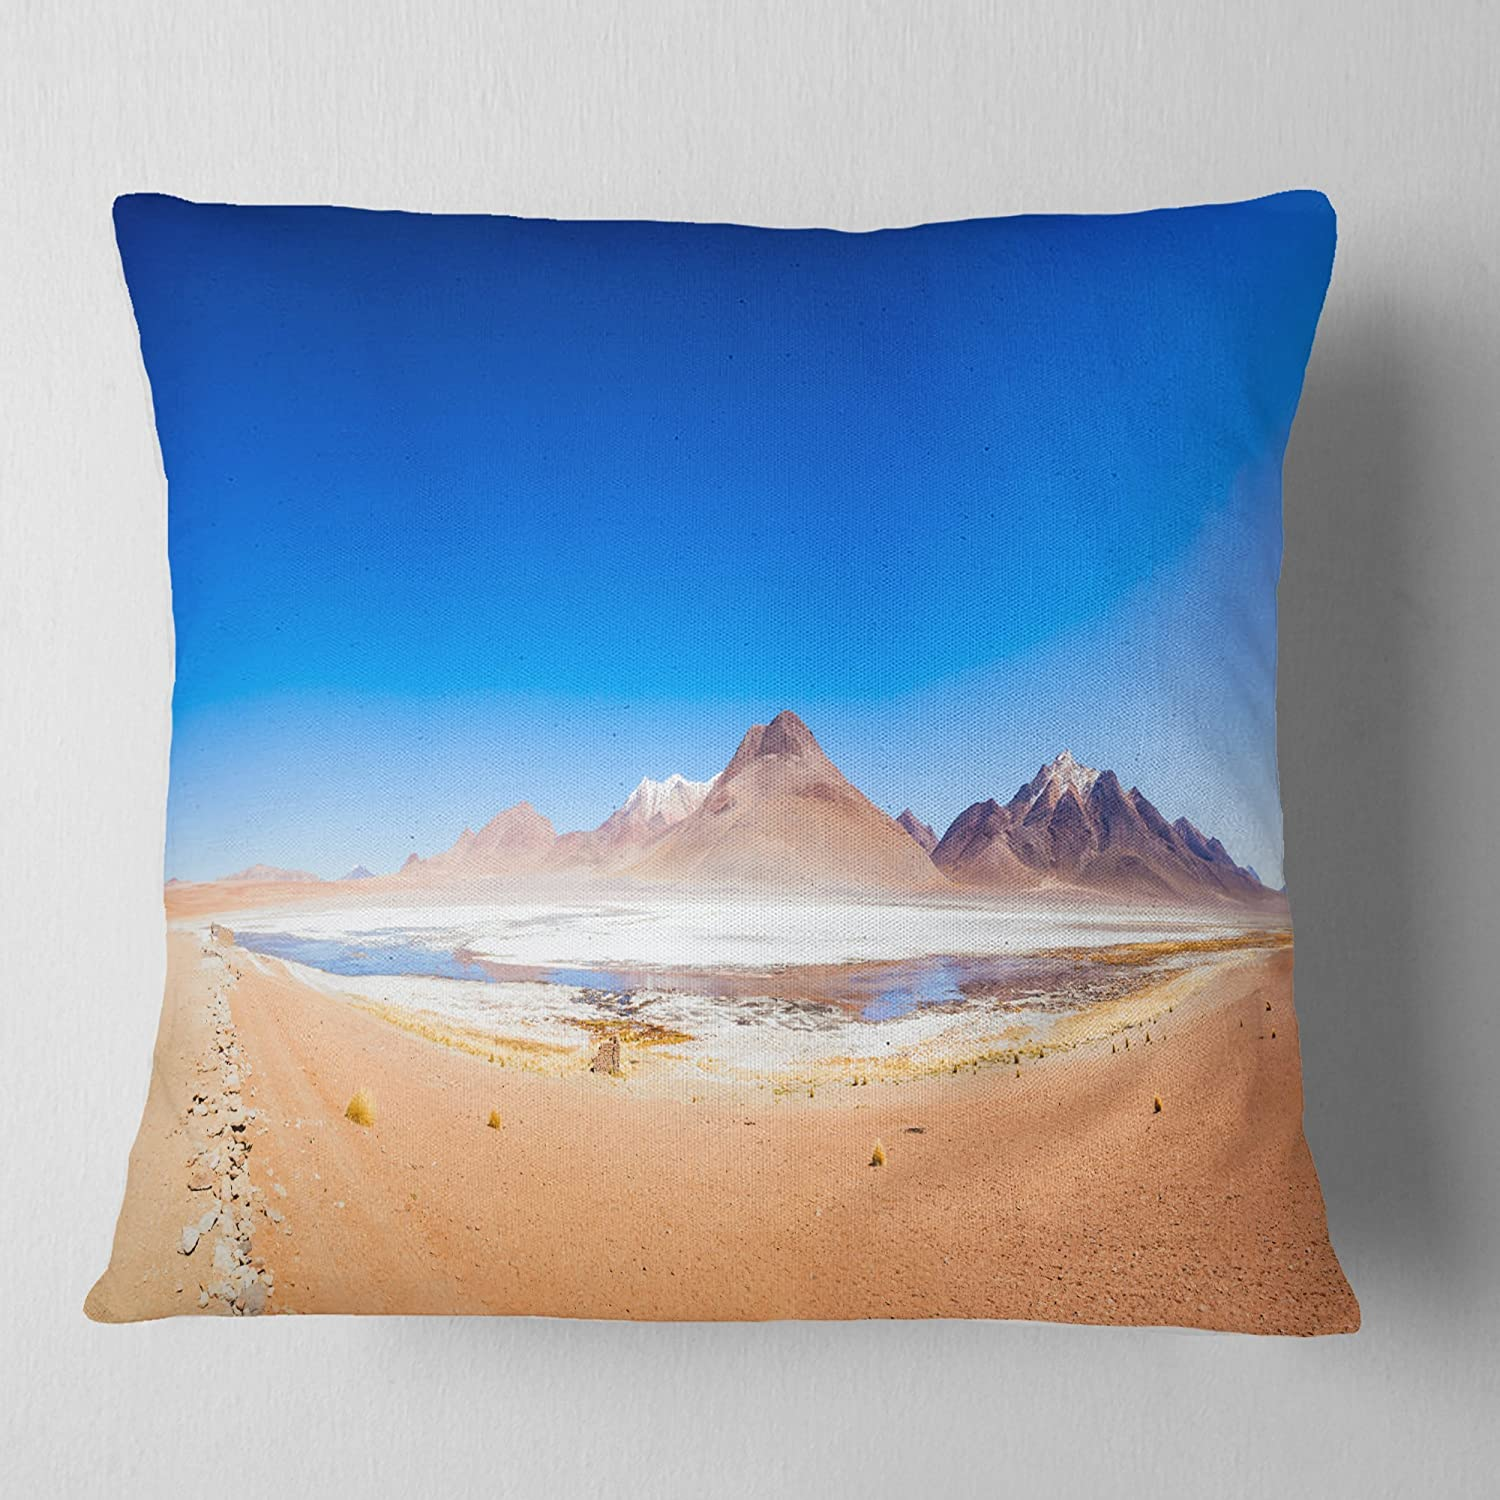 in Designart CU11569-26-26 Bolivia Altiplano Lake Panorama Modern Seascape Cushion Cover for Living Room Sofa Throw Pillow 26 in x 26 in